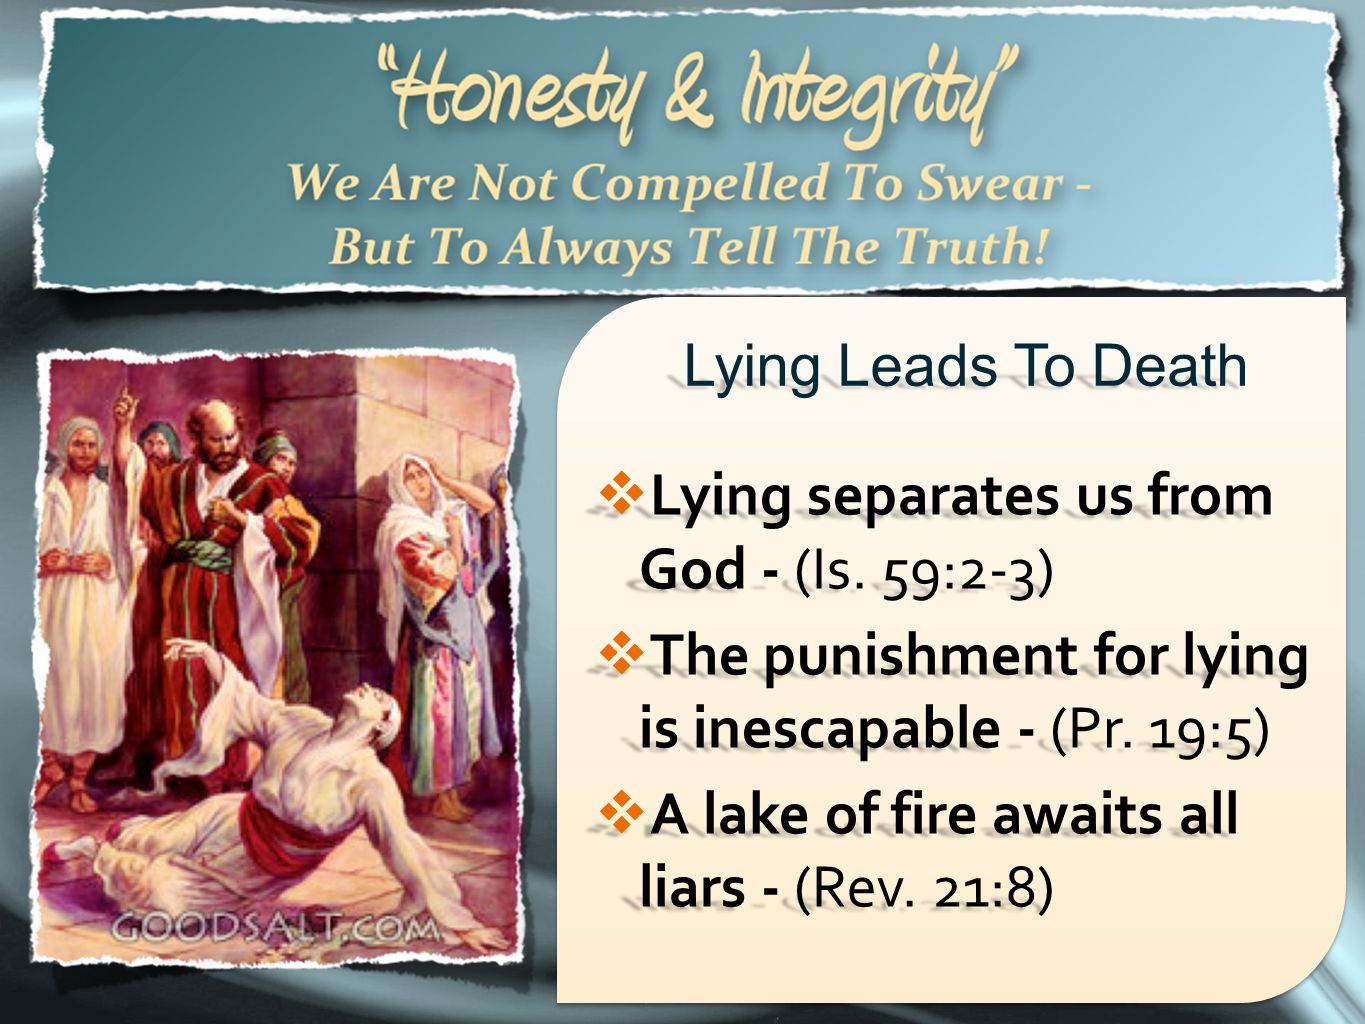 Lying separates us from God - (Is. 59:2-3)